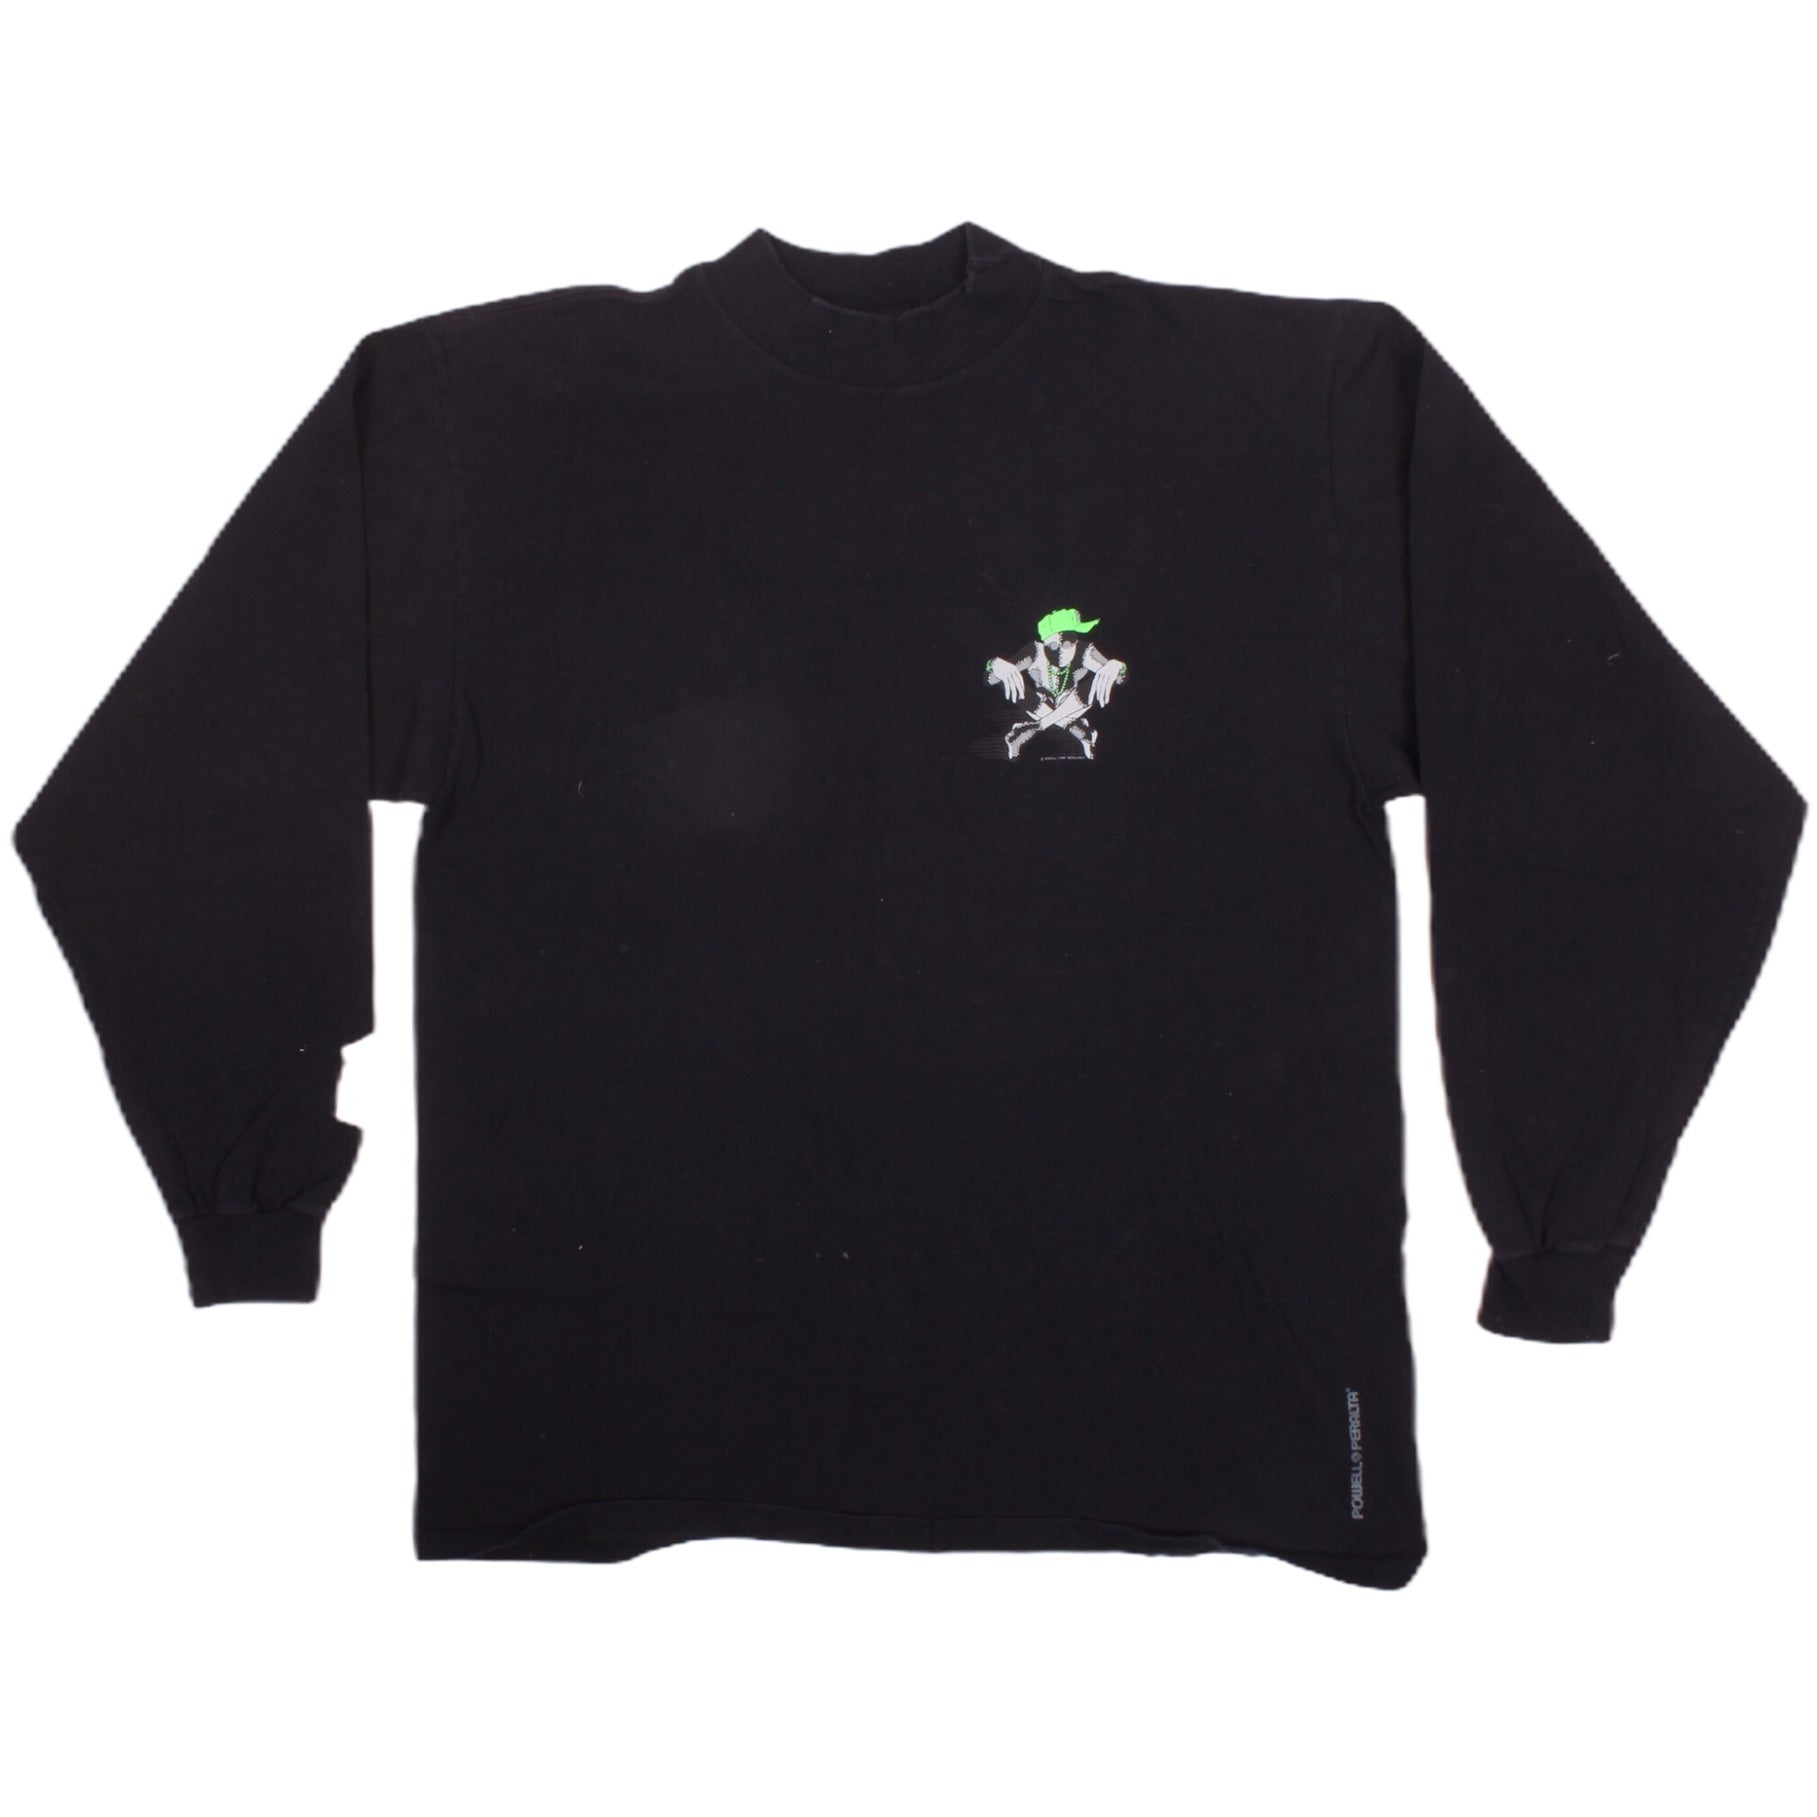 Overripe Powell Peralta Ray Barbee Mock Turtleneck Tee Black Large (1989)